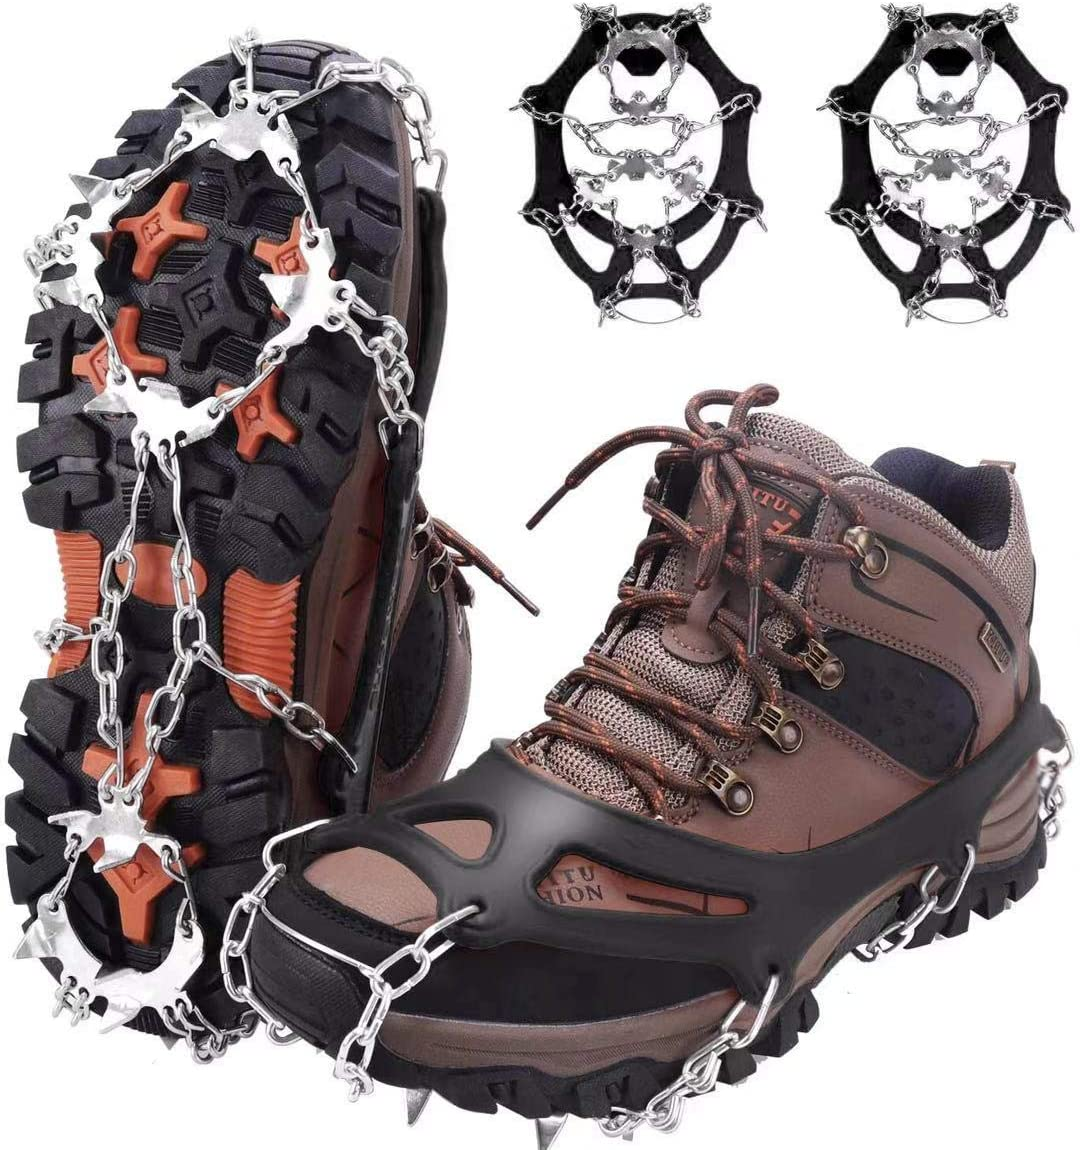 Jogging on Ice and Snow Climbing Snow Grips with 14 Stainless Steel Spikes High Stream Gear Ice Cleats for Kids Walking Anti Slip Traction Grippers for Boys and Girls Boots or Shoes for Hiking